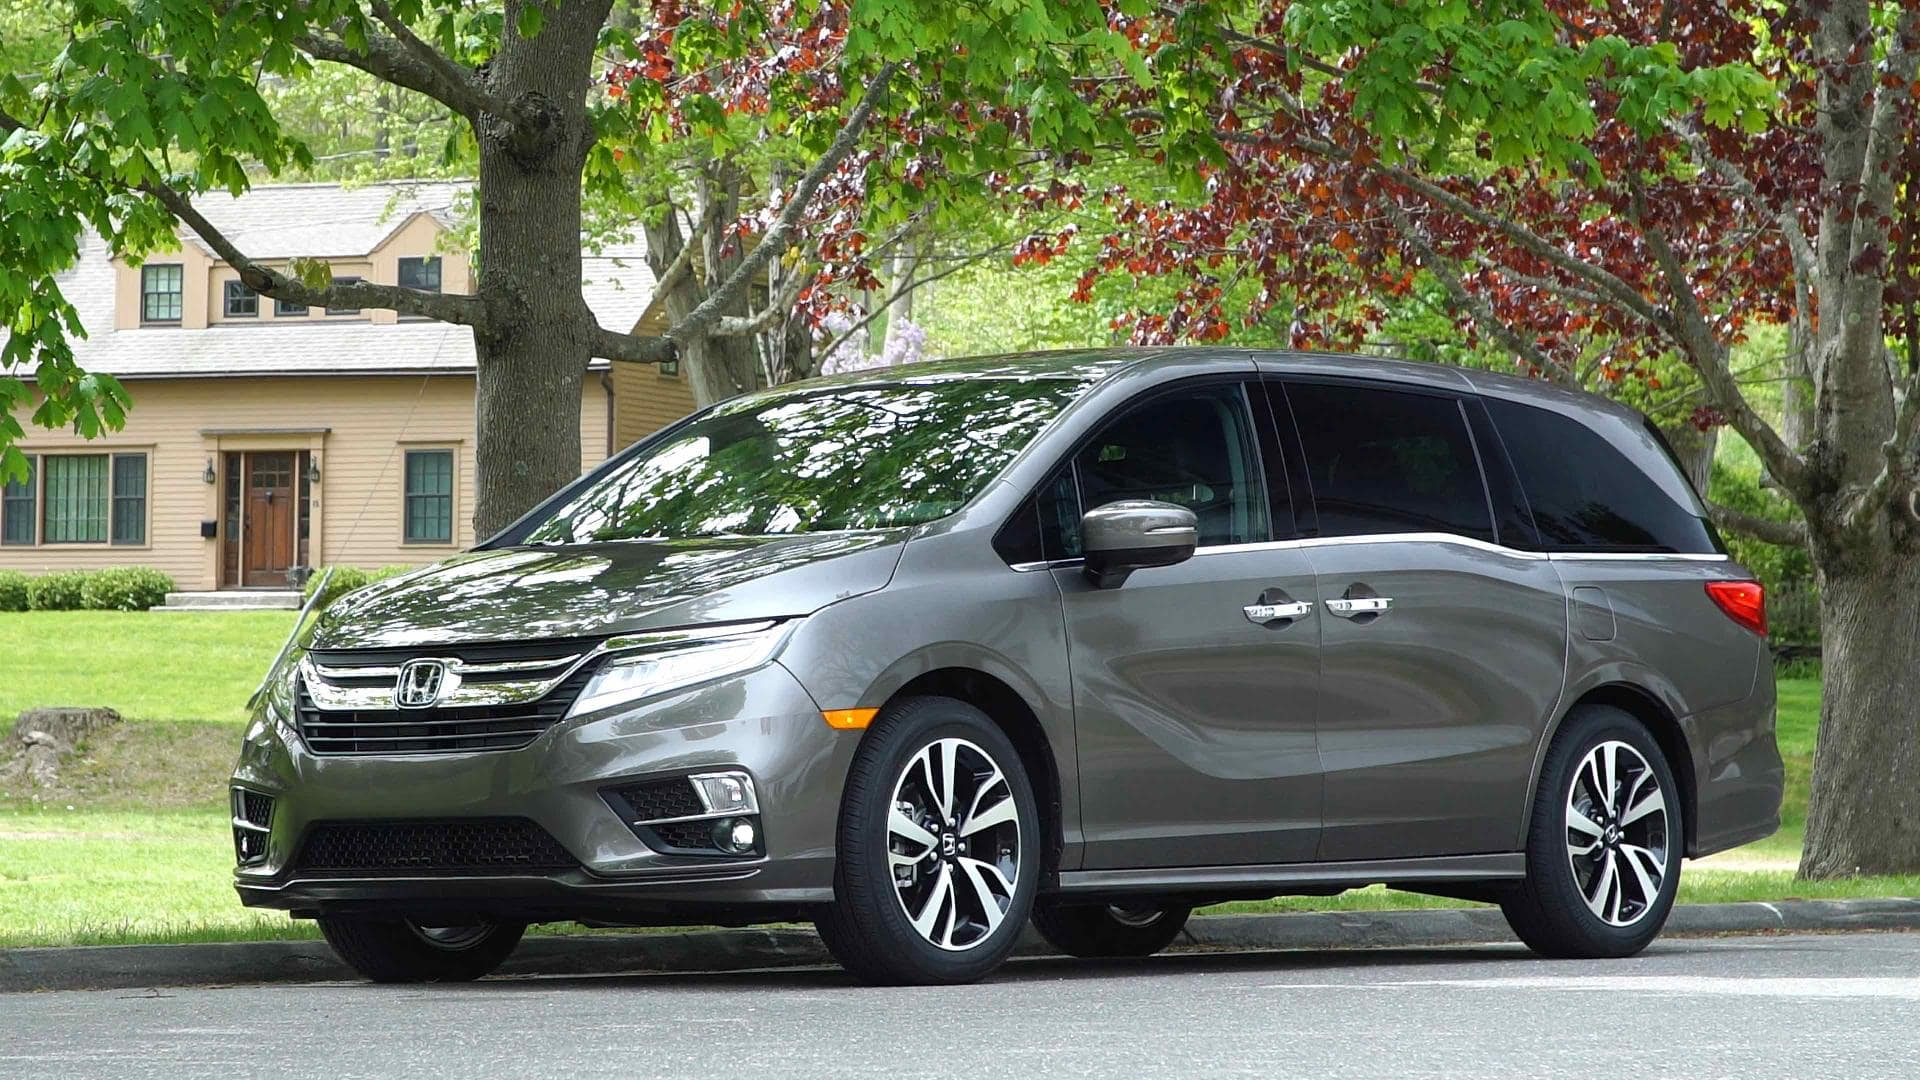 2019 Honda Odyssey Used Honda Inventory at Castle Honda Serving Chicago, IL